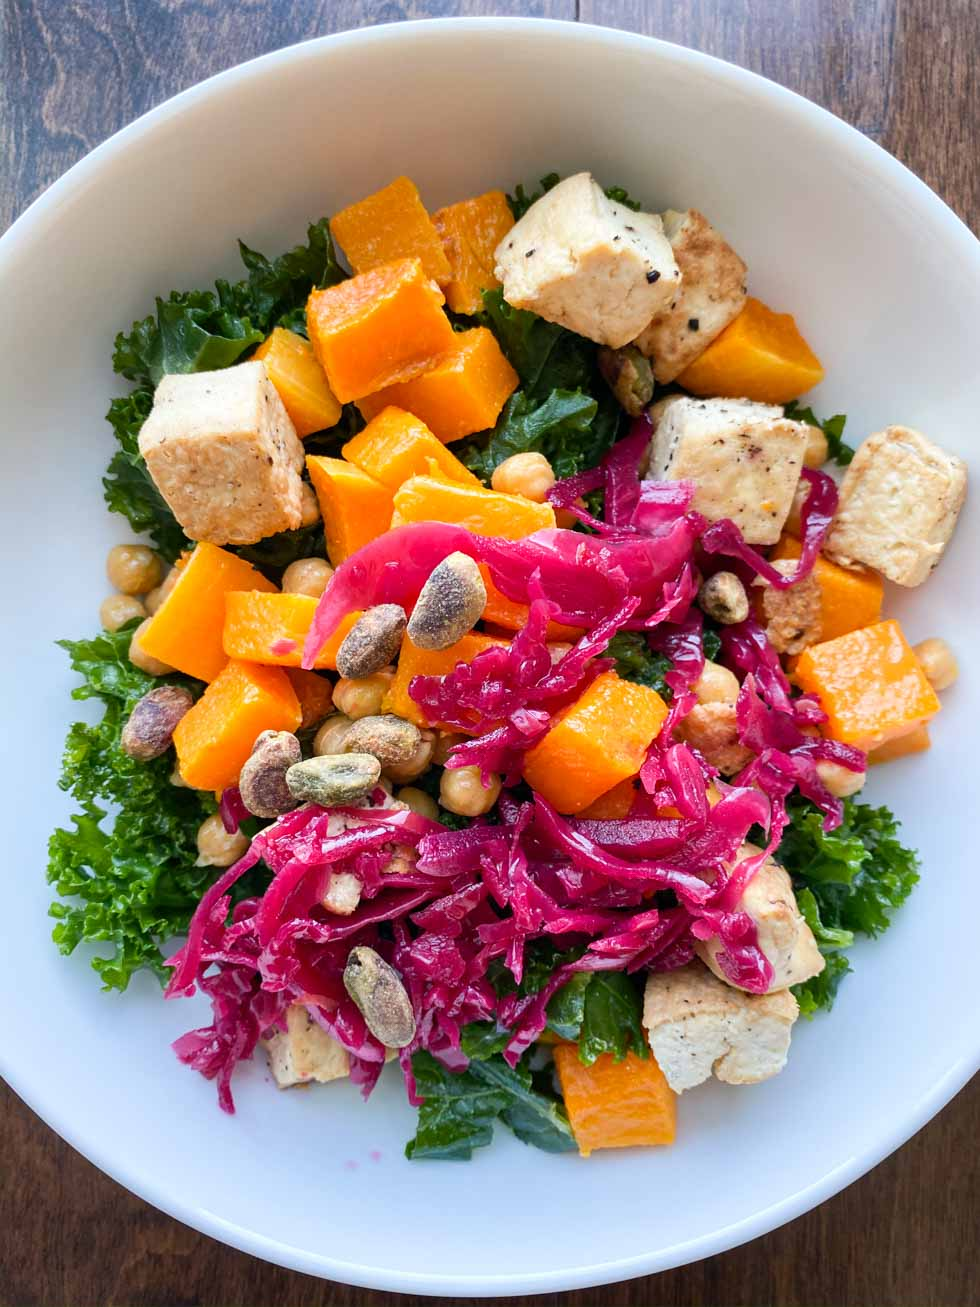 Butternut Squash and Kale Plant Based Bowl